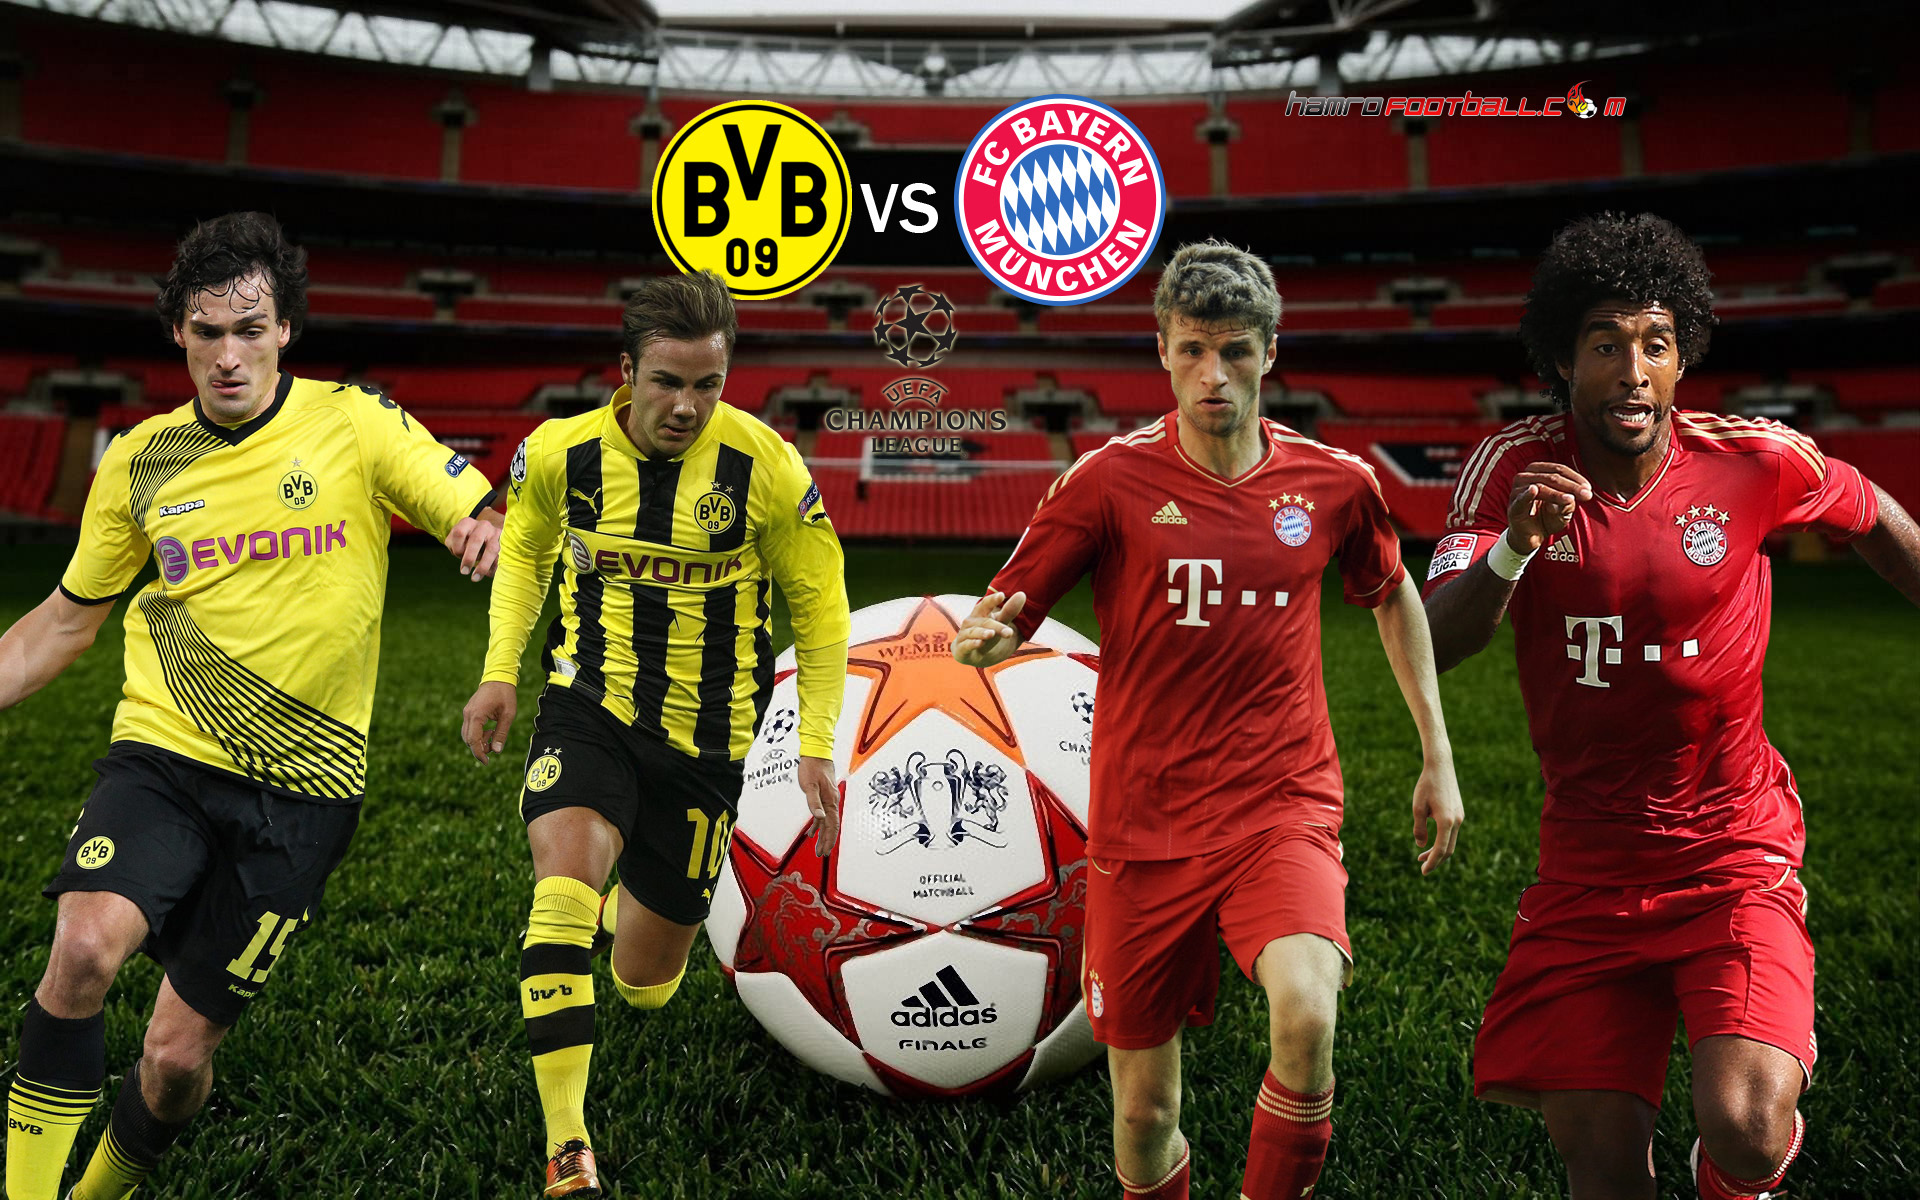 bayern munich vs borussia dortmund today